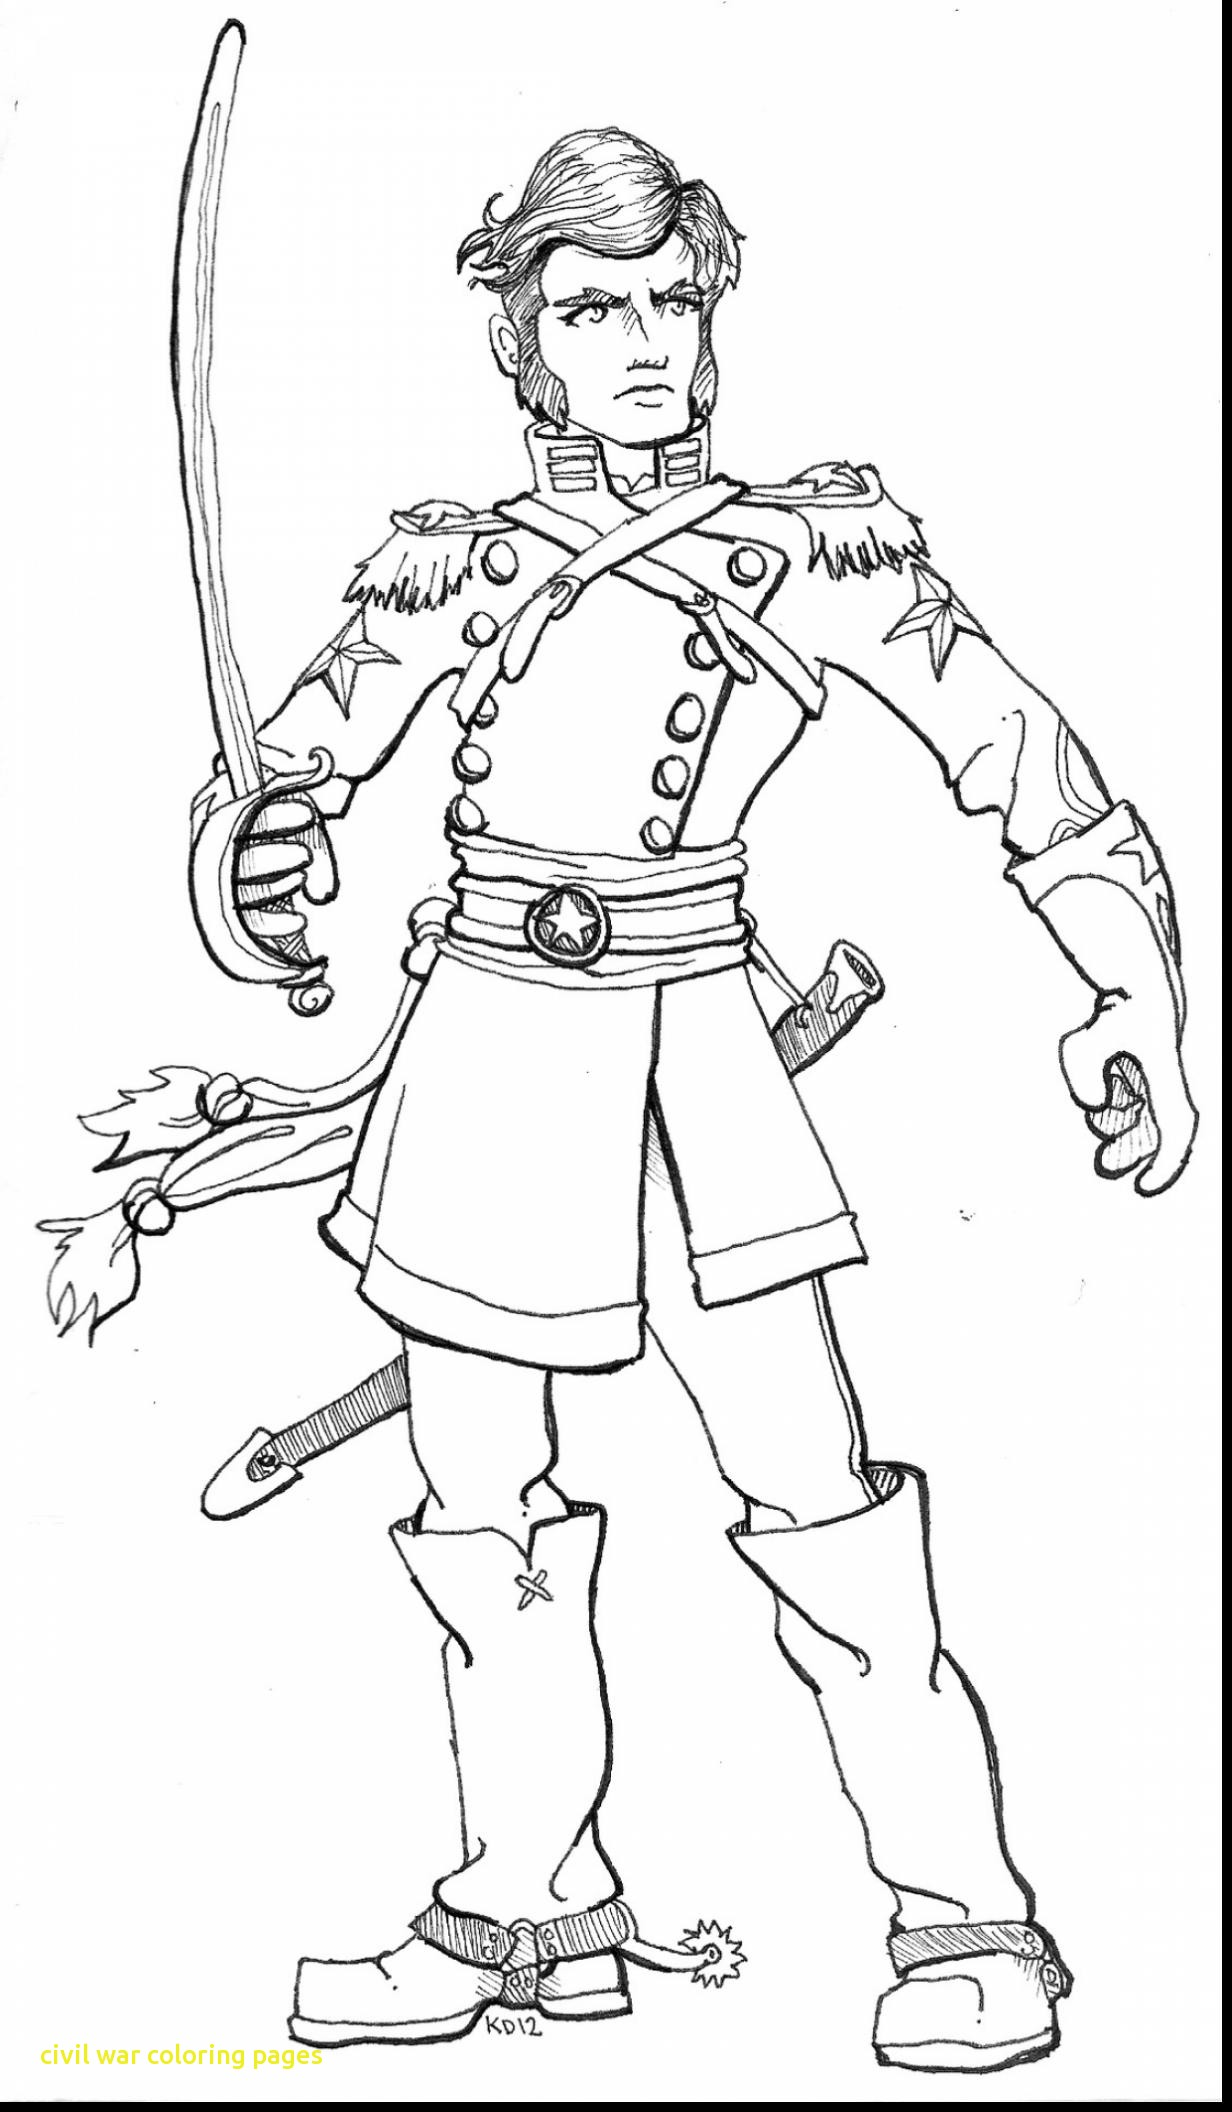 war coloring pages confederate soldier coloring pages at getcoloringscom coloring war pages